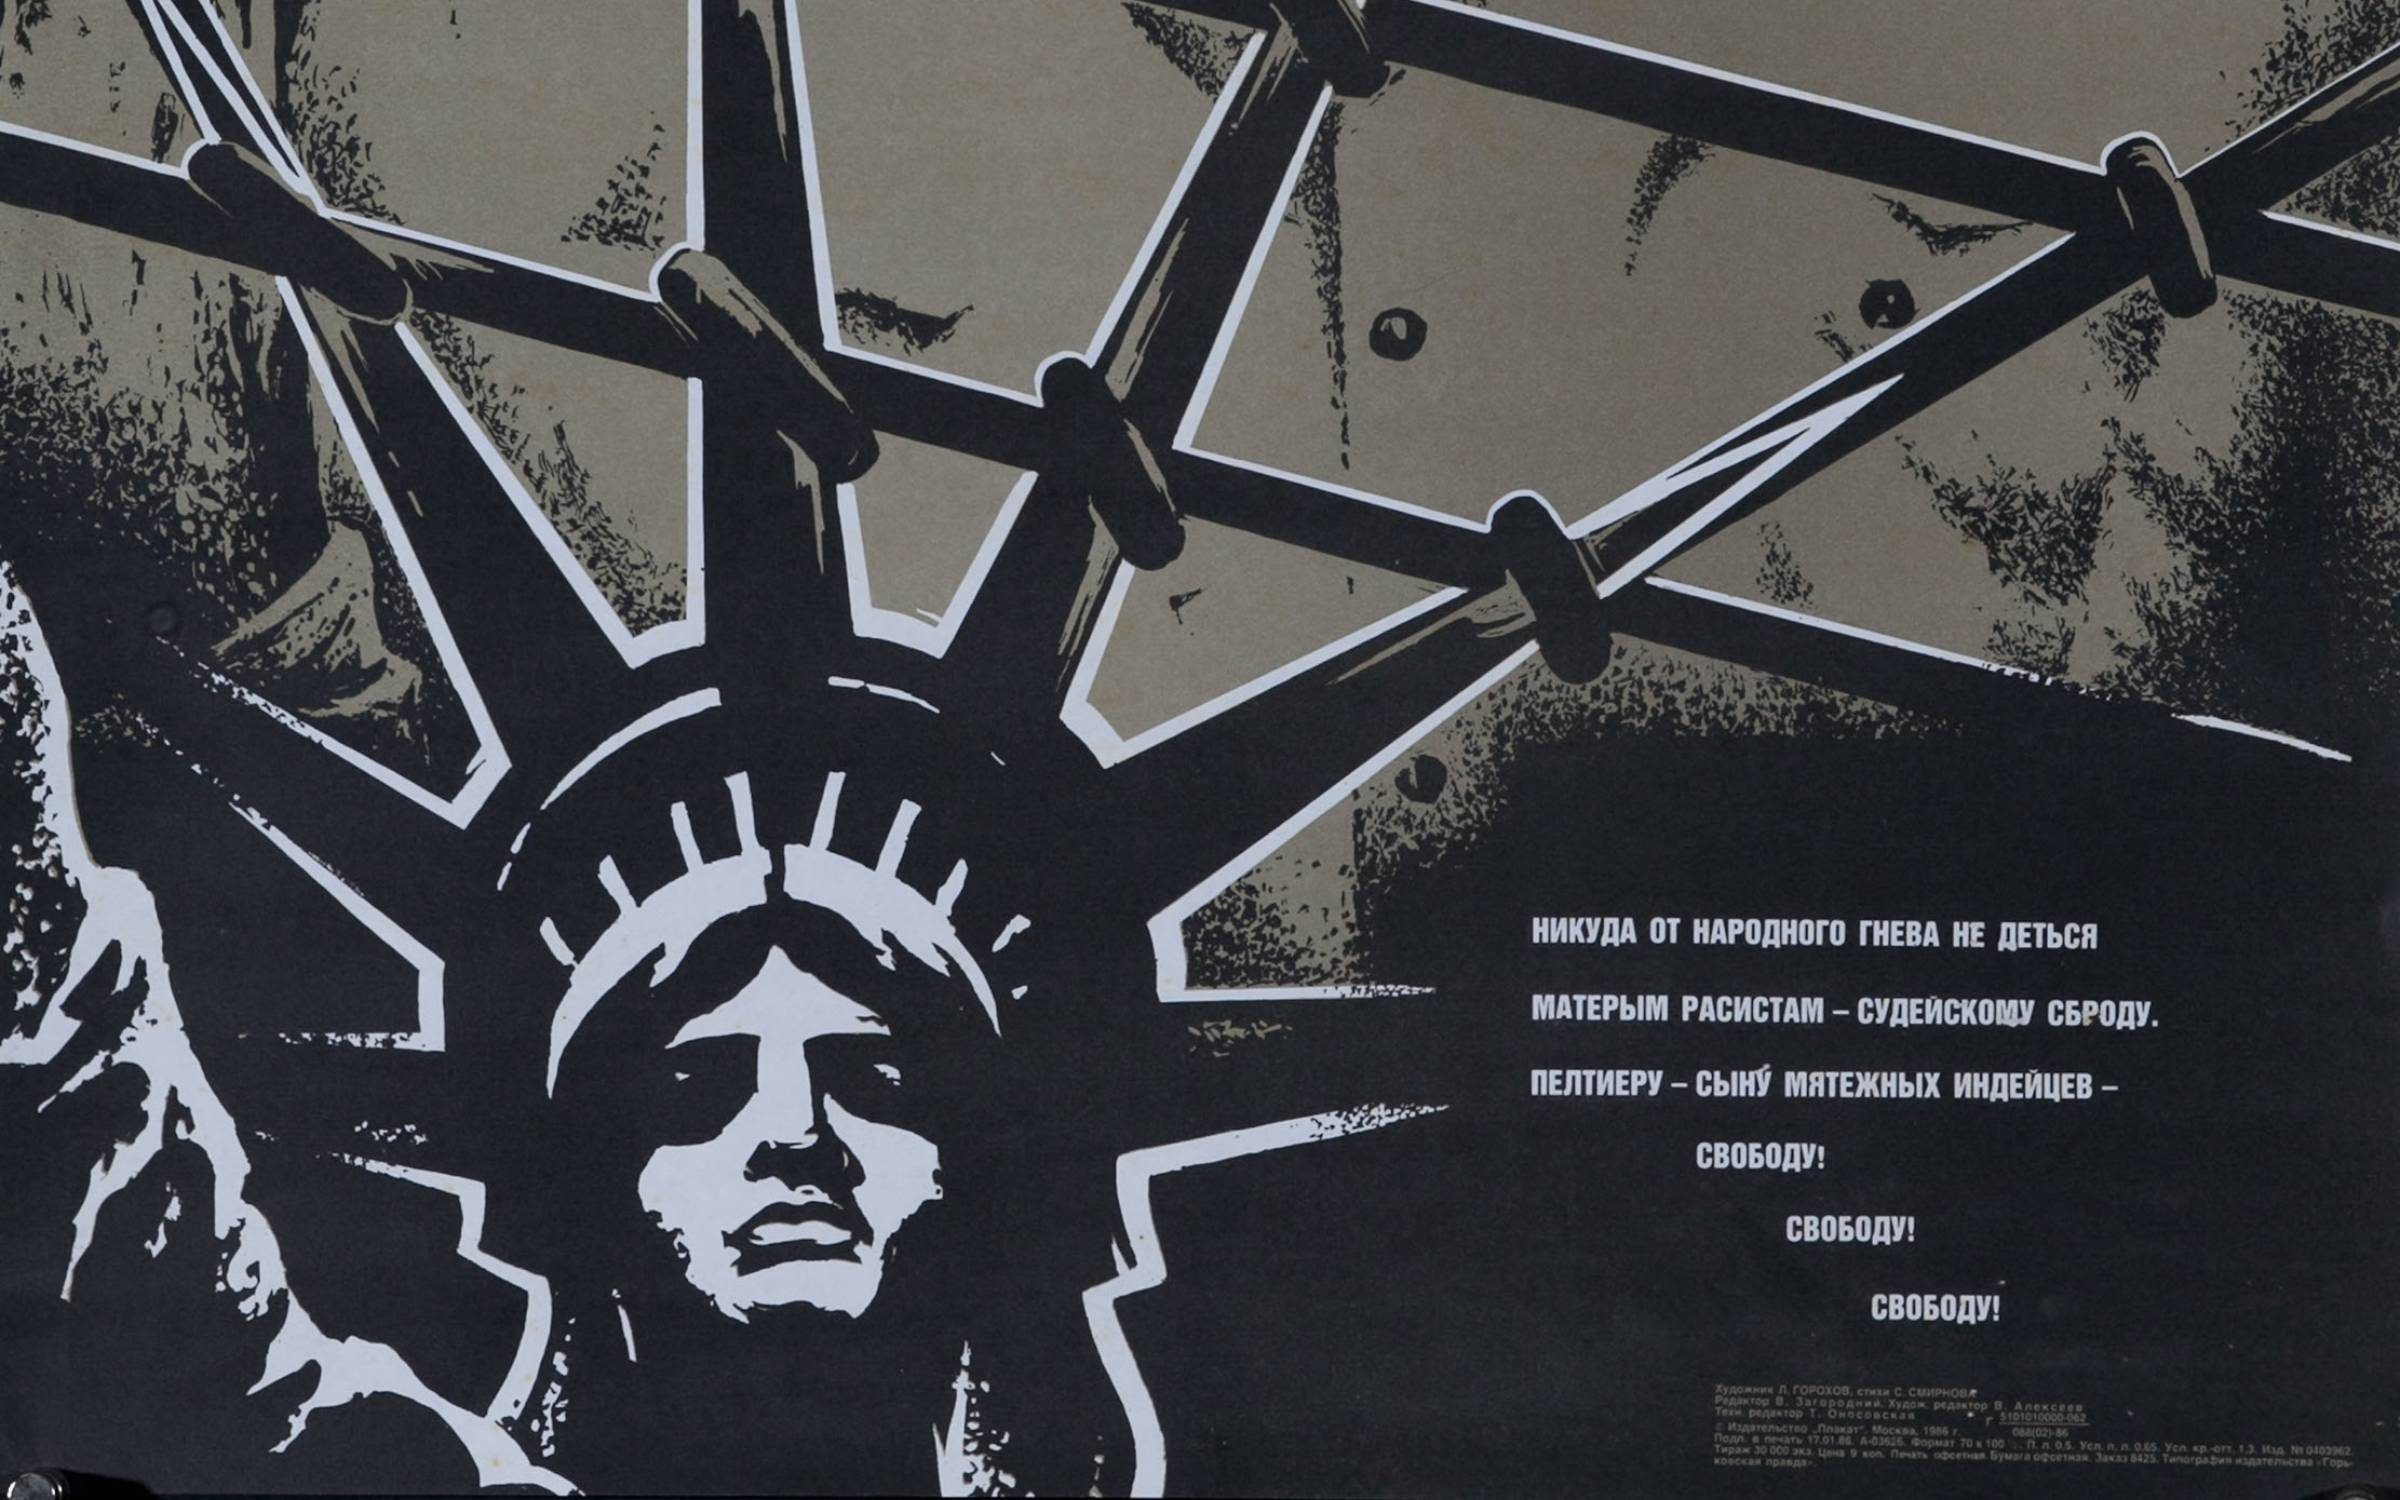 Soviet-era anti-American poster of prison bars created out of the crown of the Statue of Liberty Credit: David Pollack/Corbis via Getty Images